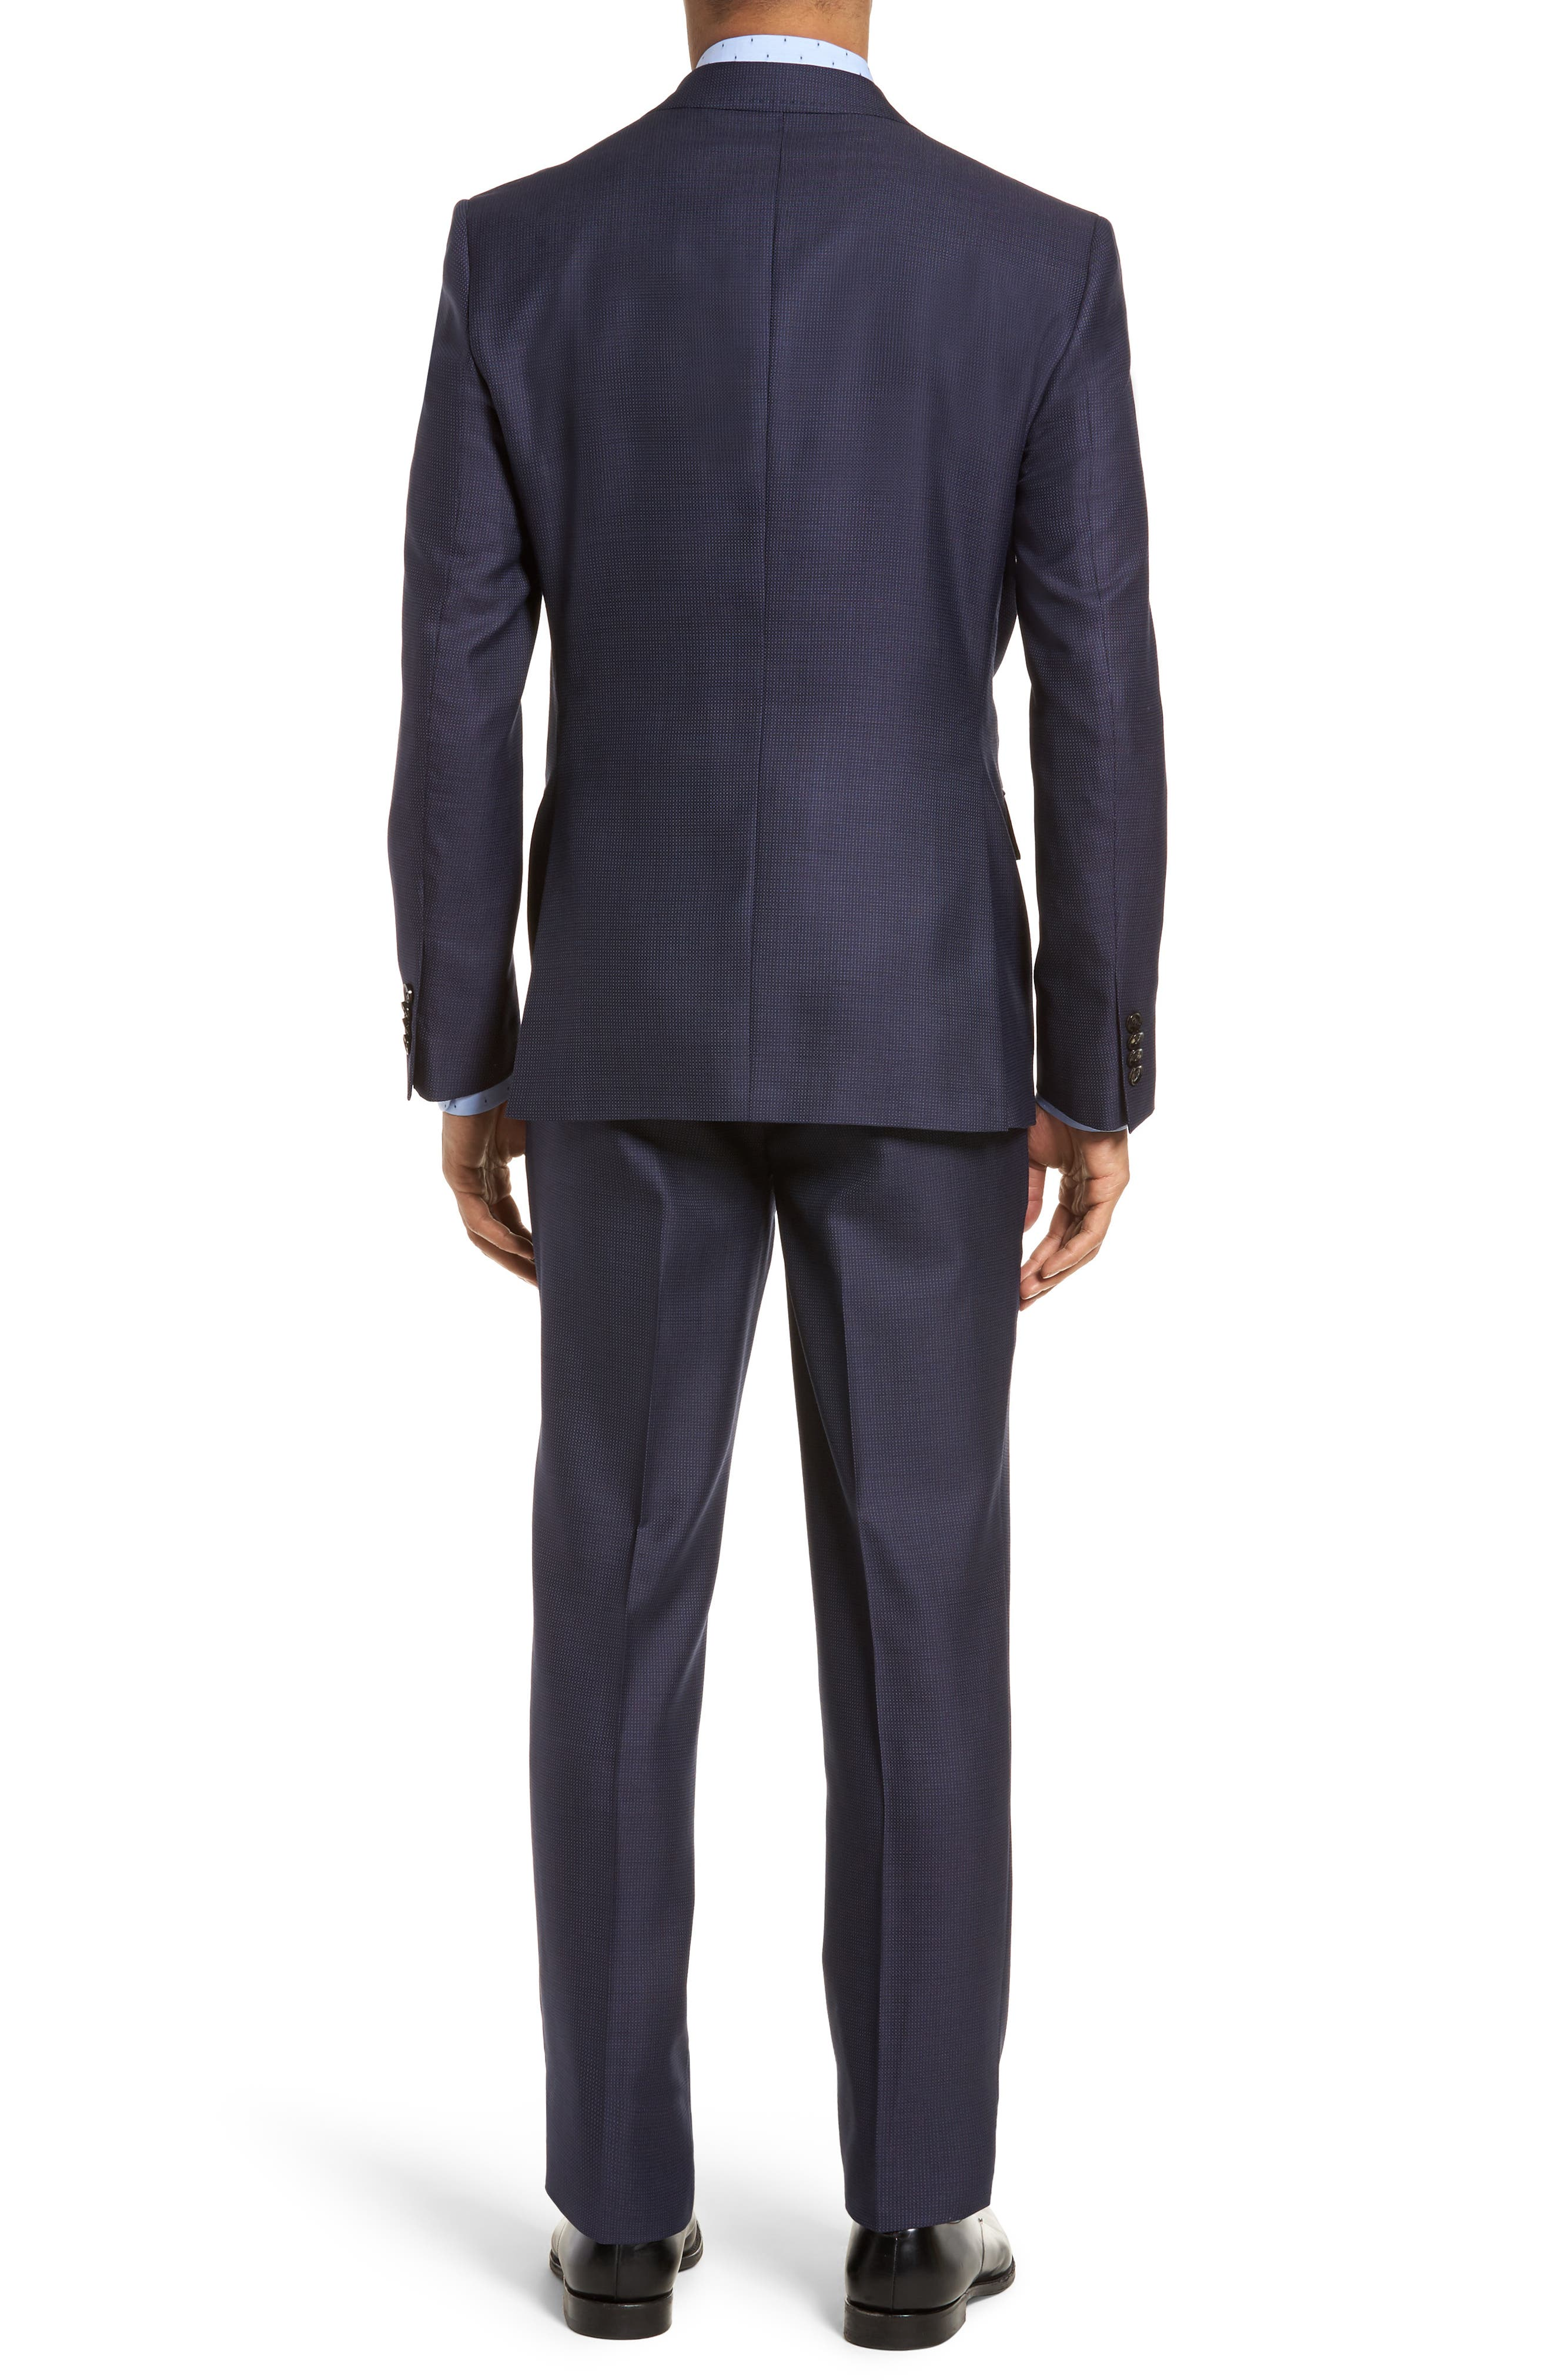 Roger Extra Slim Fit Solid Wool Suit,                             Alternate thumbnail 2, color,                             410